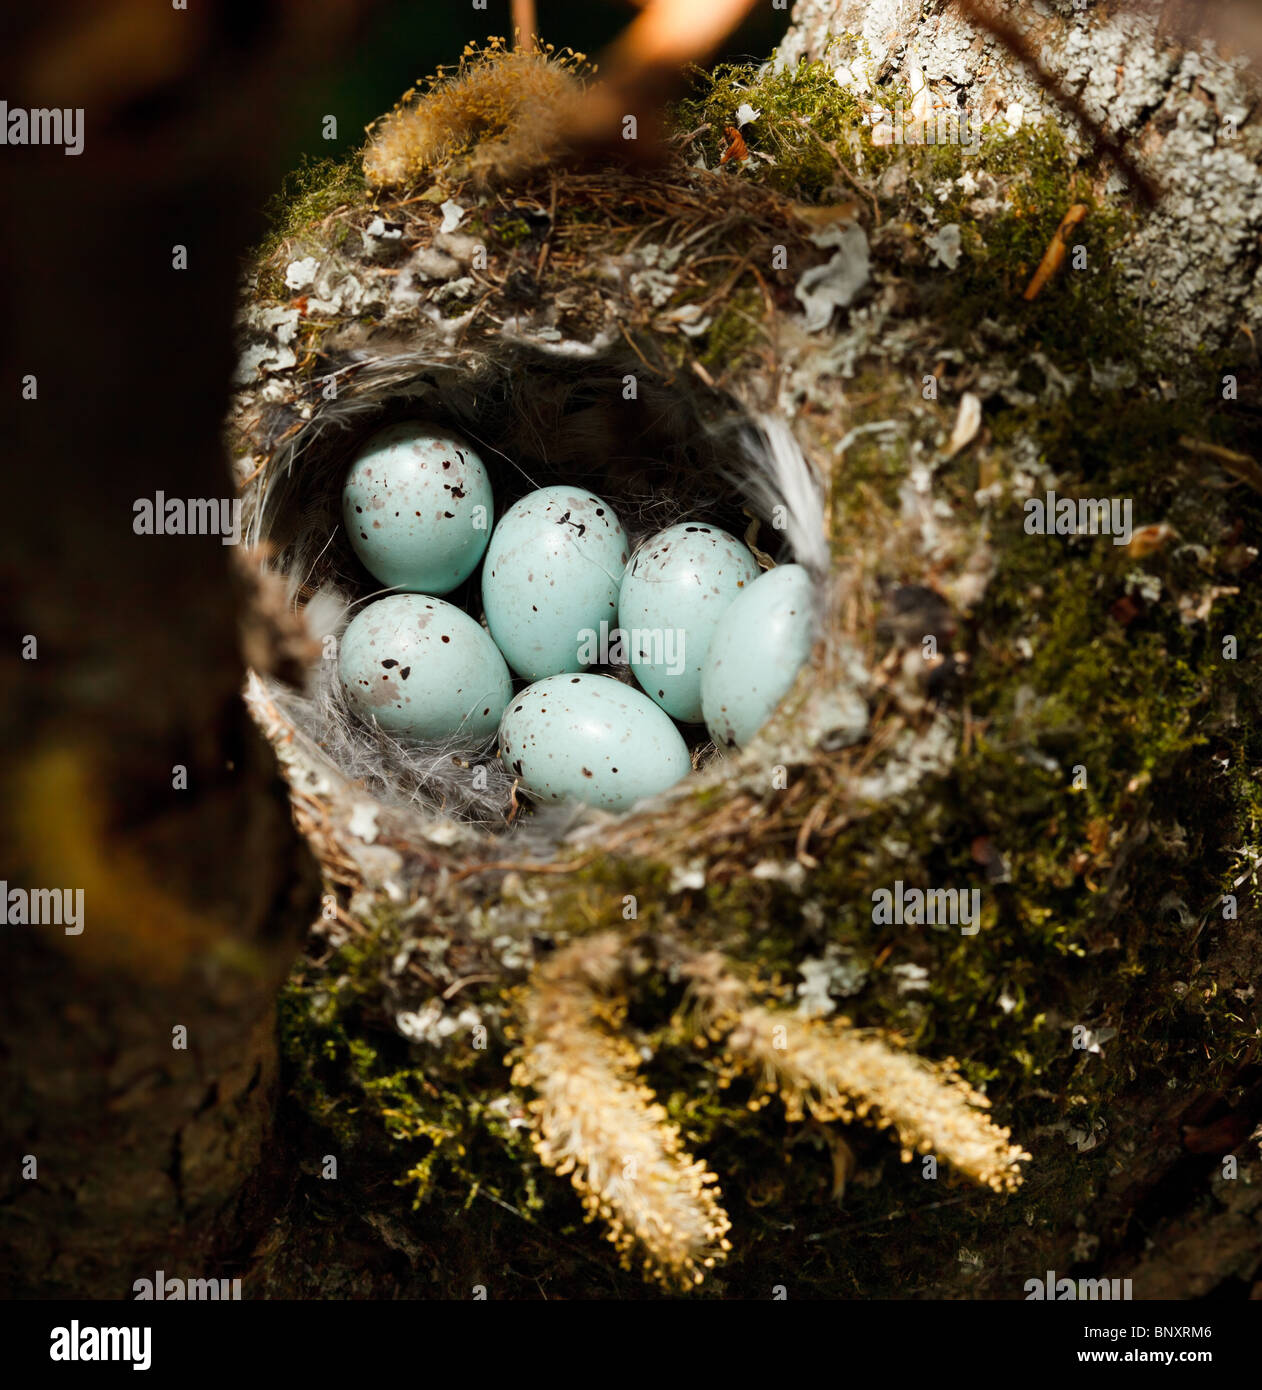 The nest of the common finch, Fringilla coelebs, with eggs. - Stock Image